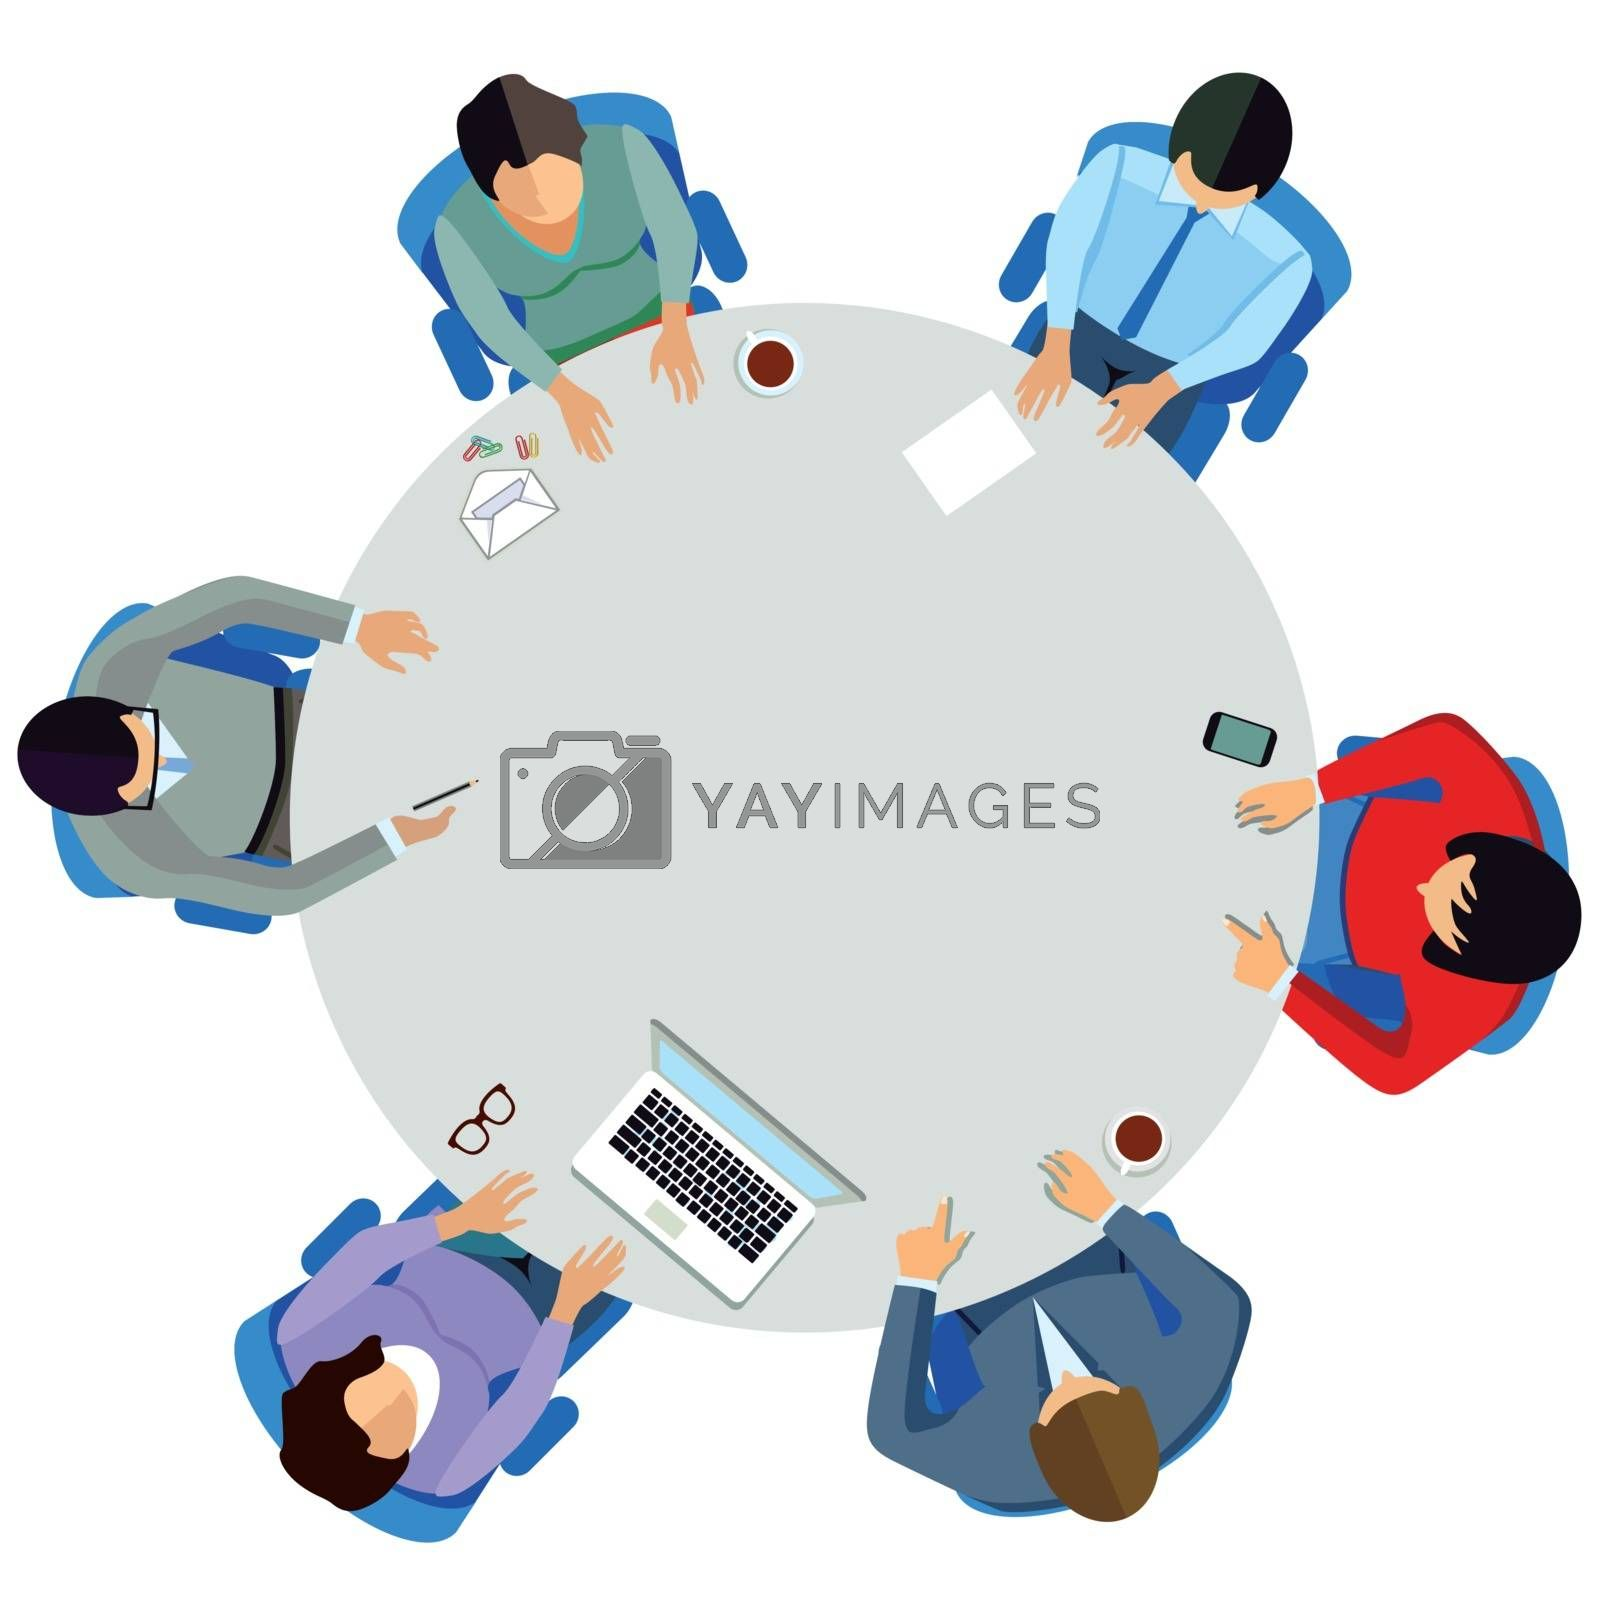 Discussion round at the round table